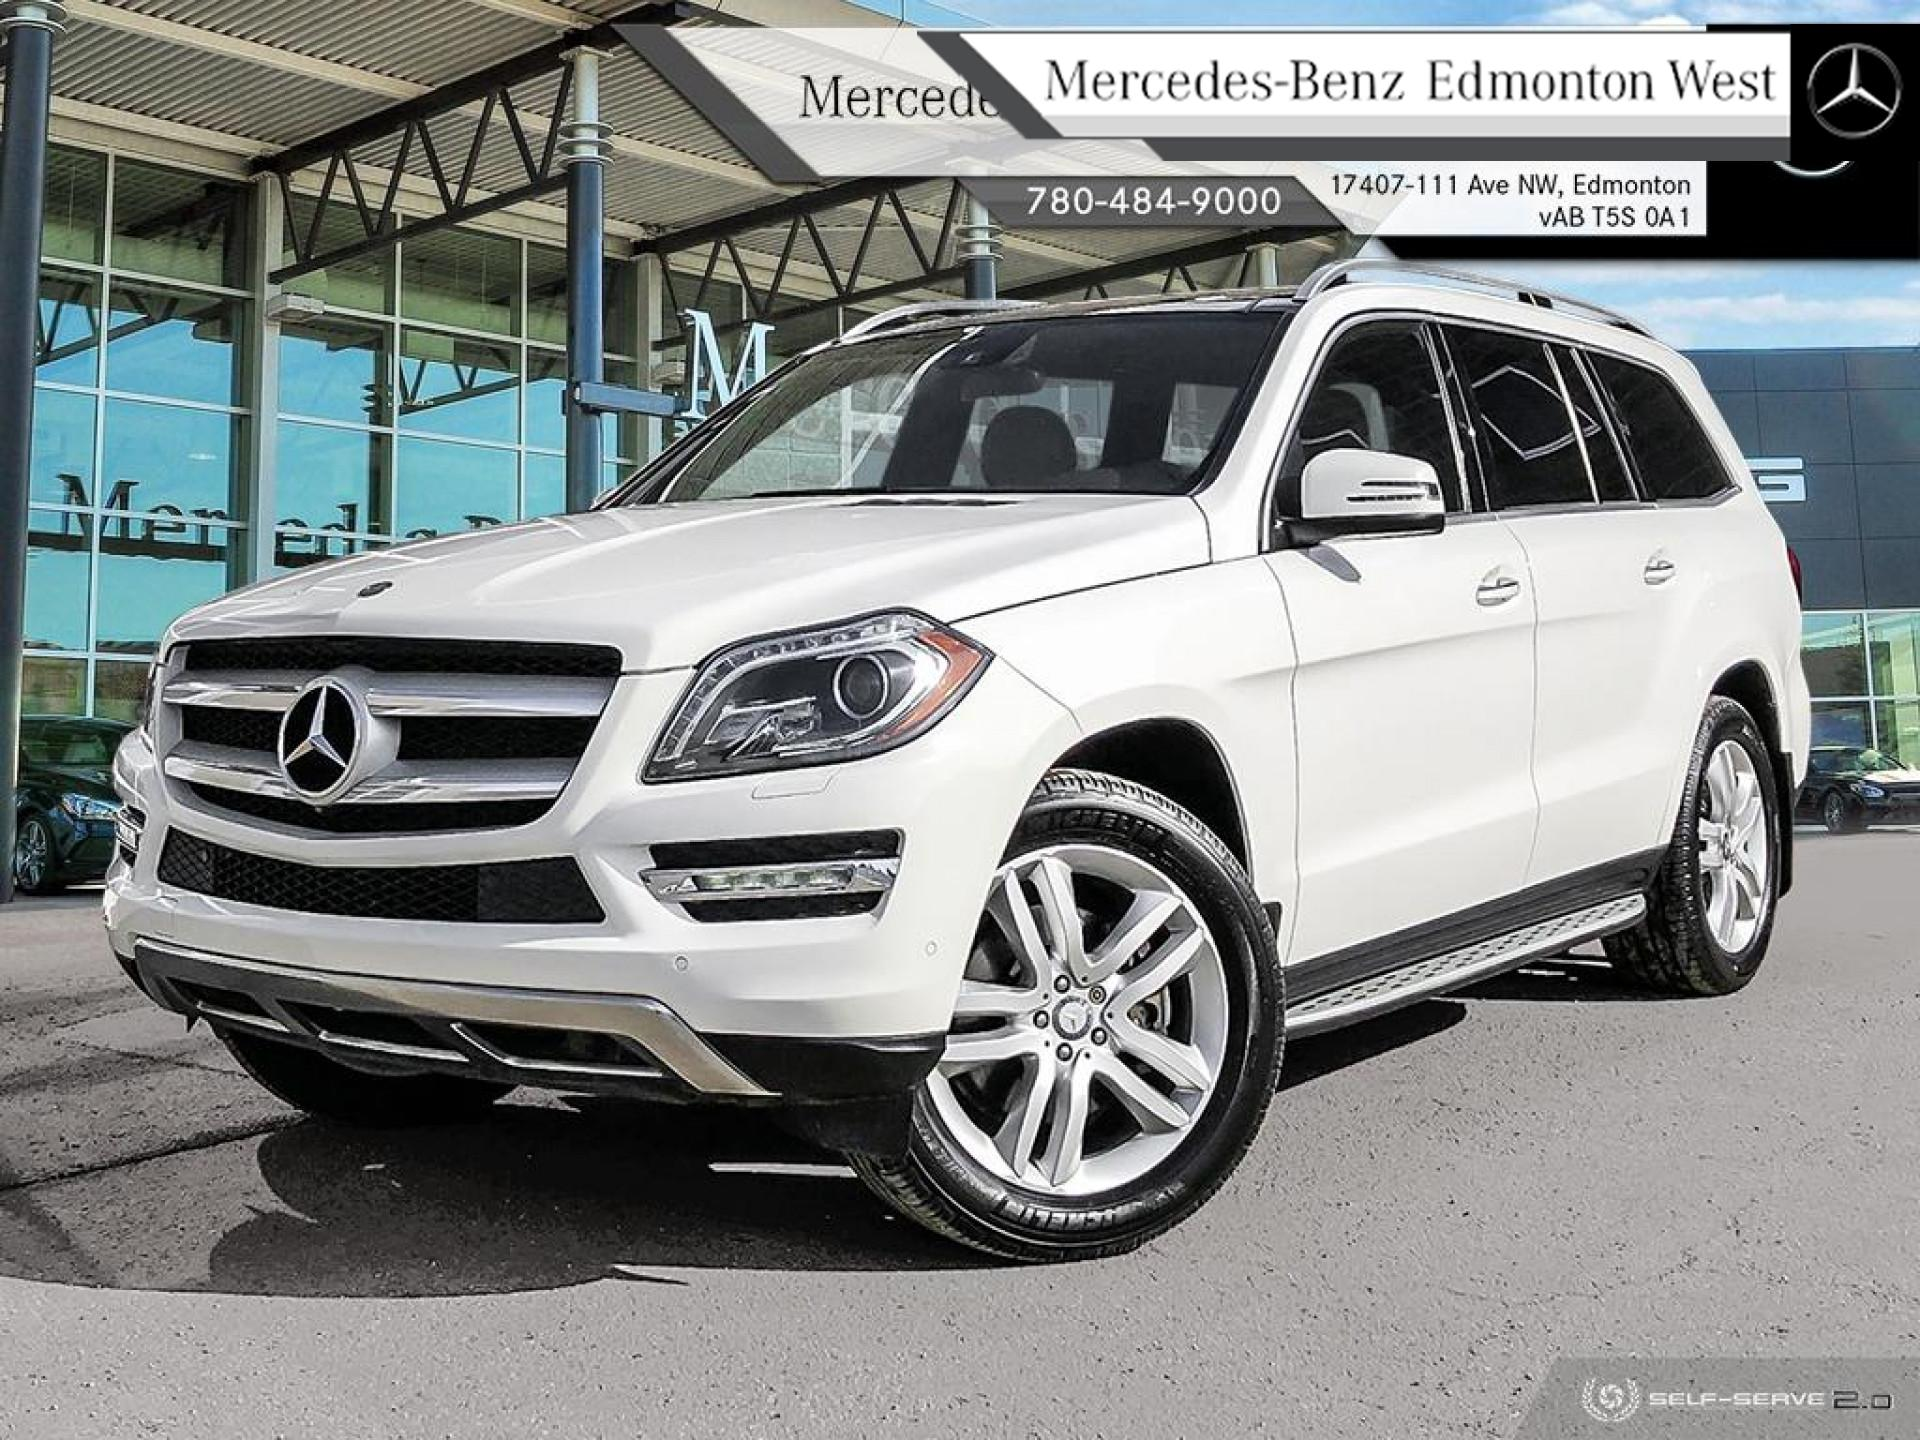 Pre-Owned 2015 Mercedes Benz GL-Class 450 4MATIC One Owner, Local Vehicle, Premium Package, Upgraded Leather, Extended Warranty to 160,000 km